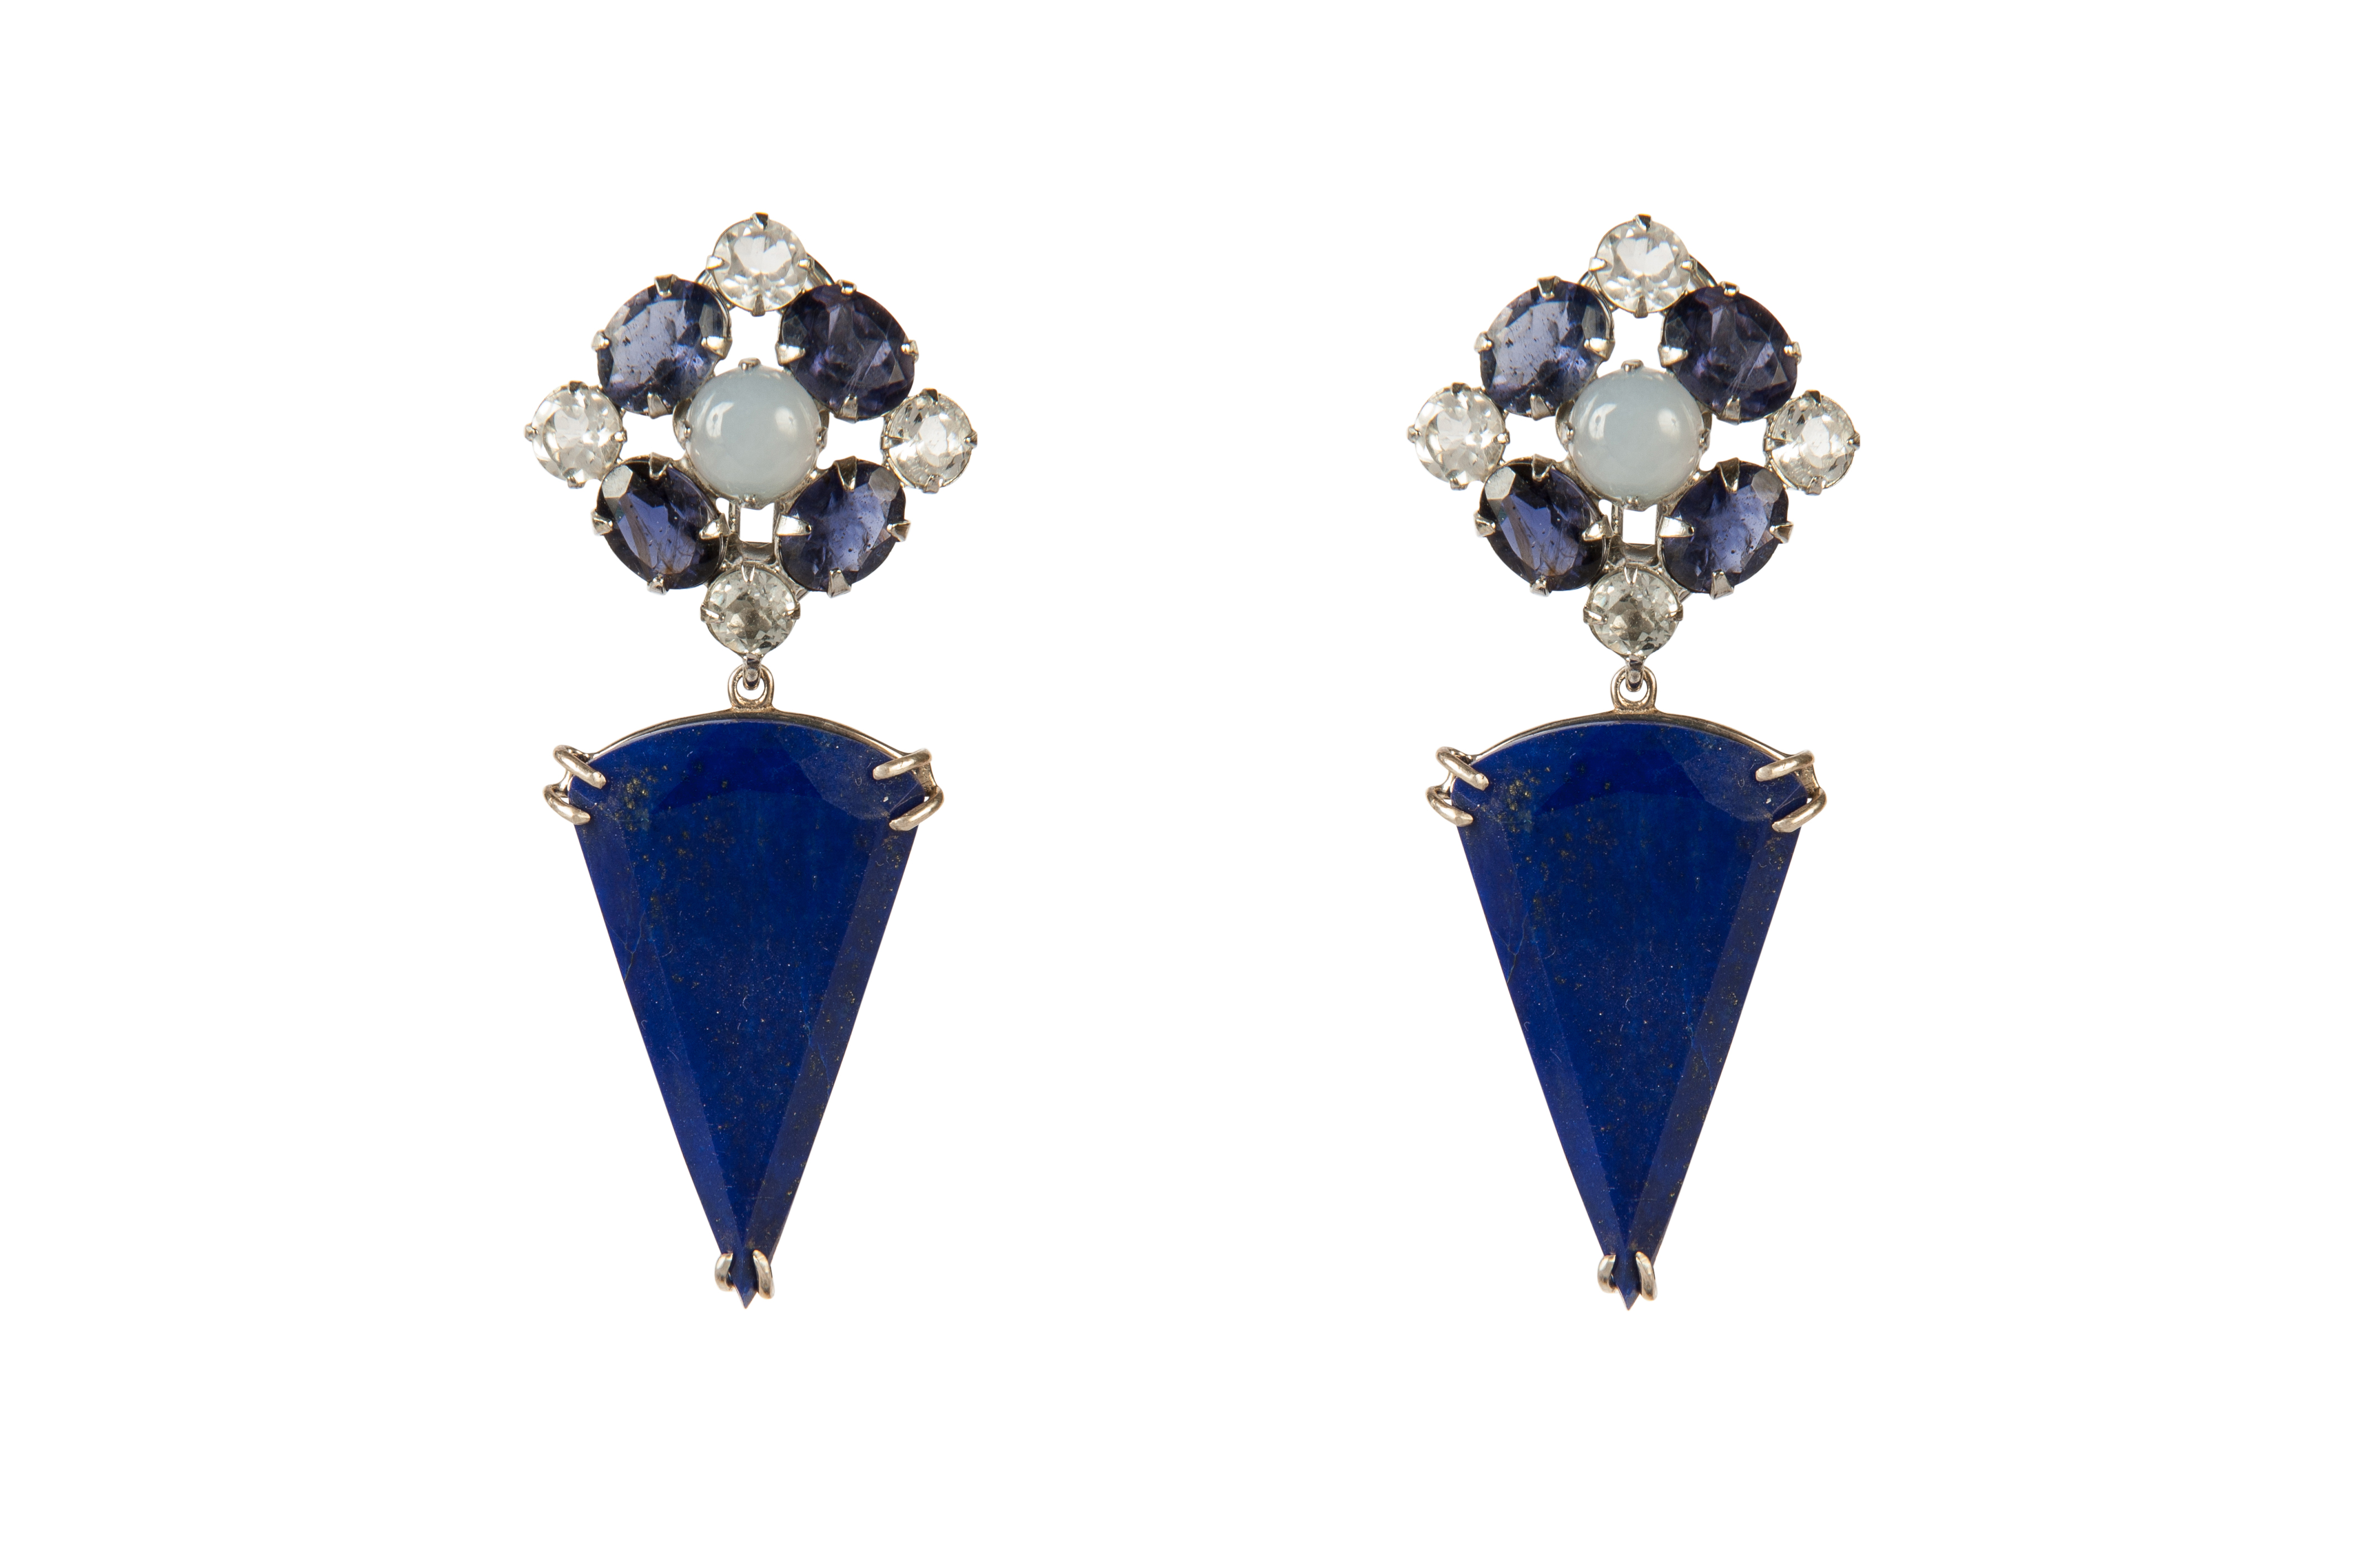 Chalcedony, Iolite and Lapis Convertible Earrings